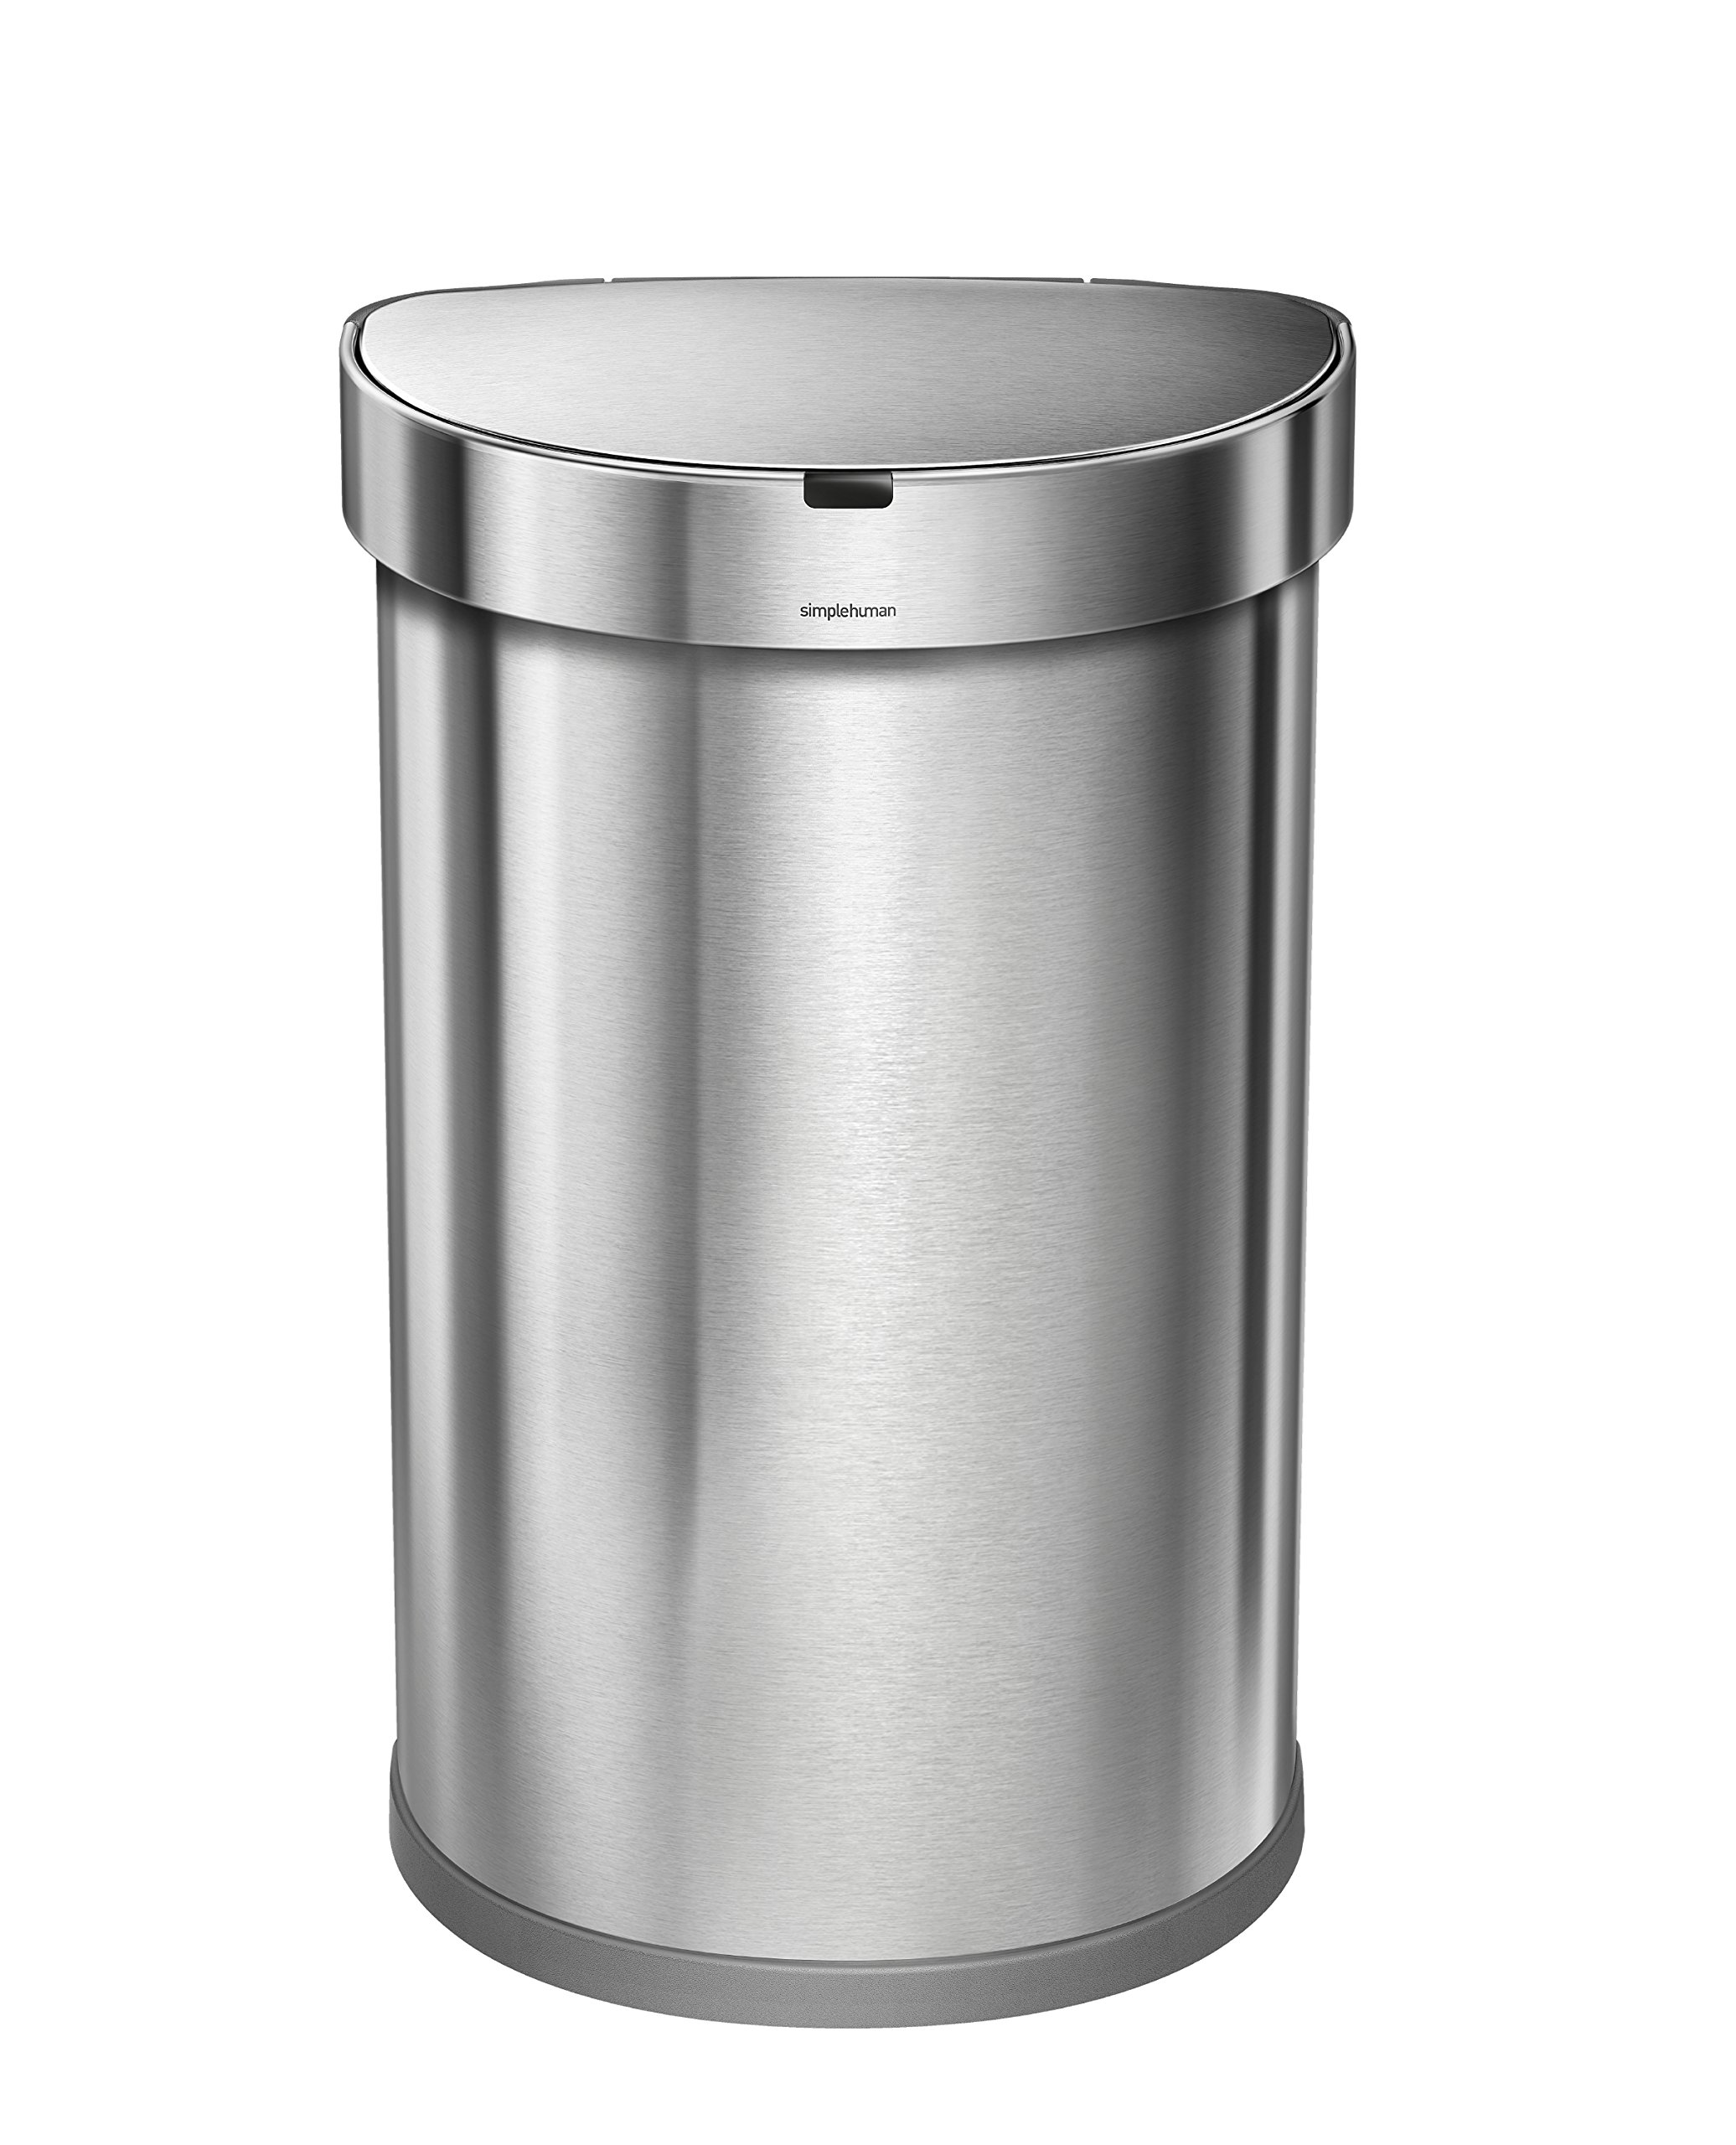 simplehuman 45 Liter / 12 Gallon Stainless Steel Semi-Round Sensor Can, Touchless Automatic Trash Can by simplehuman